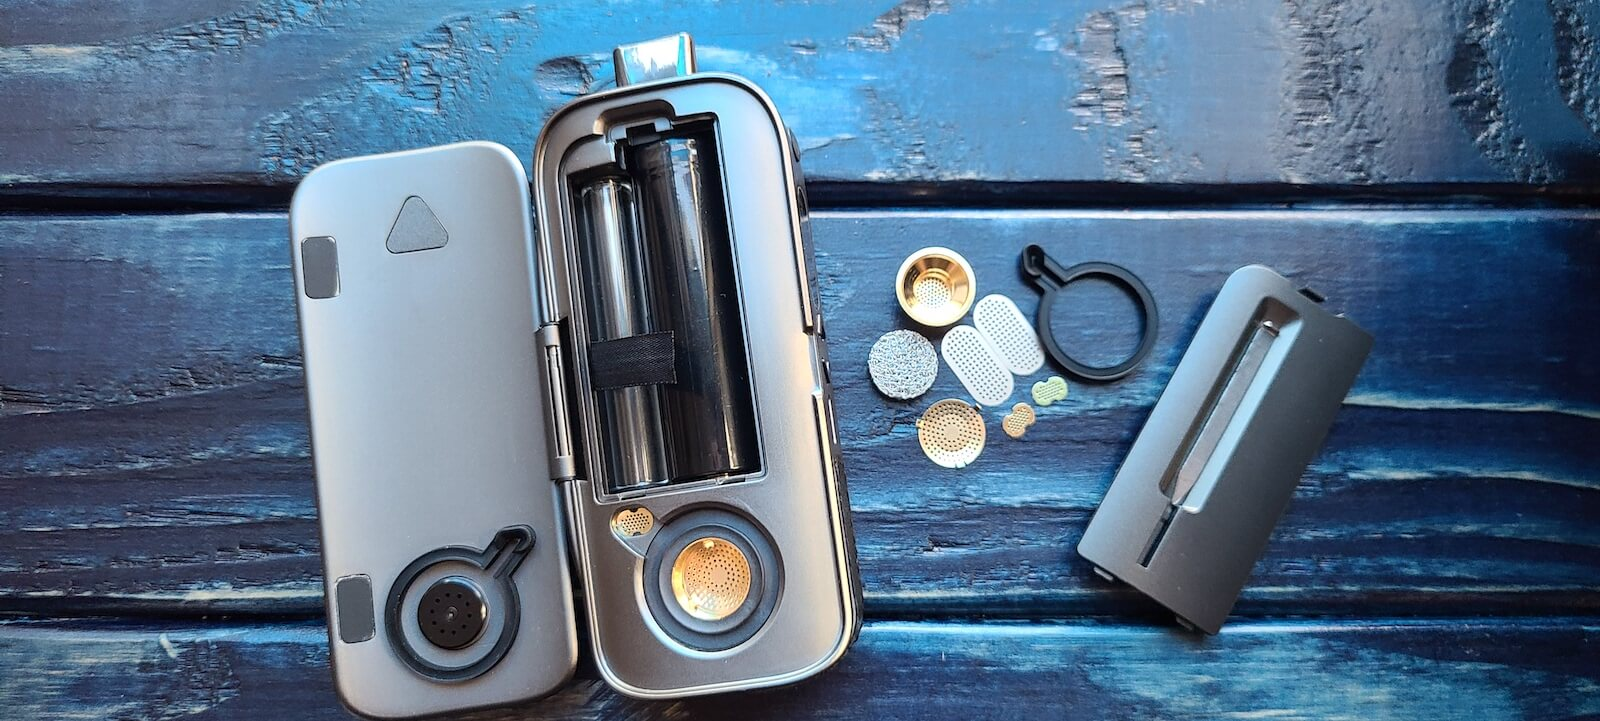 AirVape Legacy Review - everything you need to know and more!